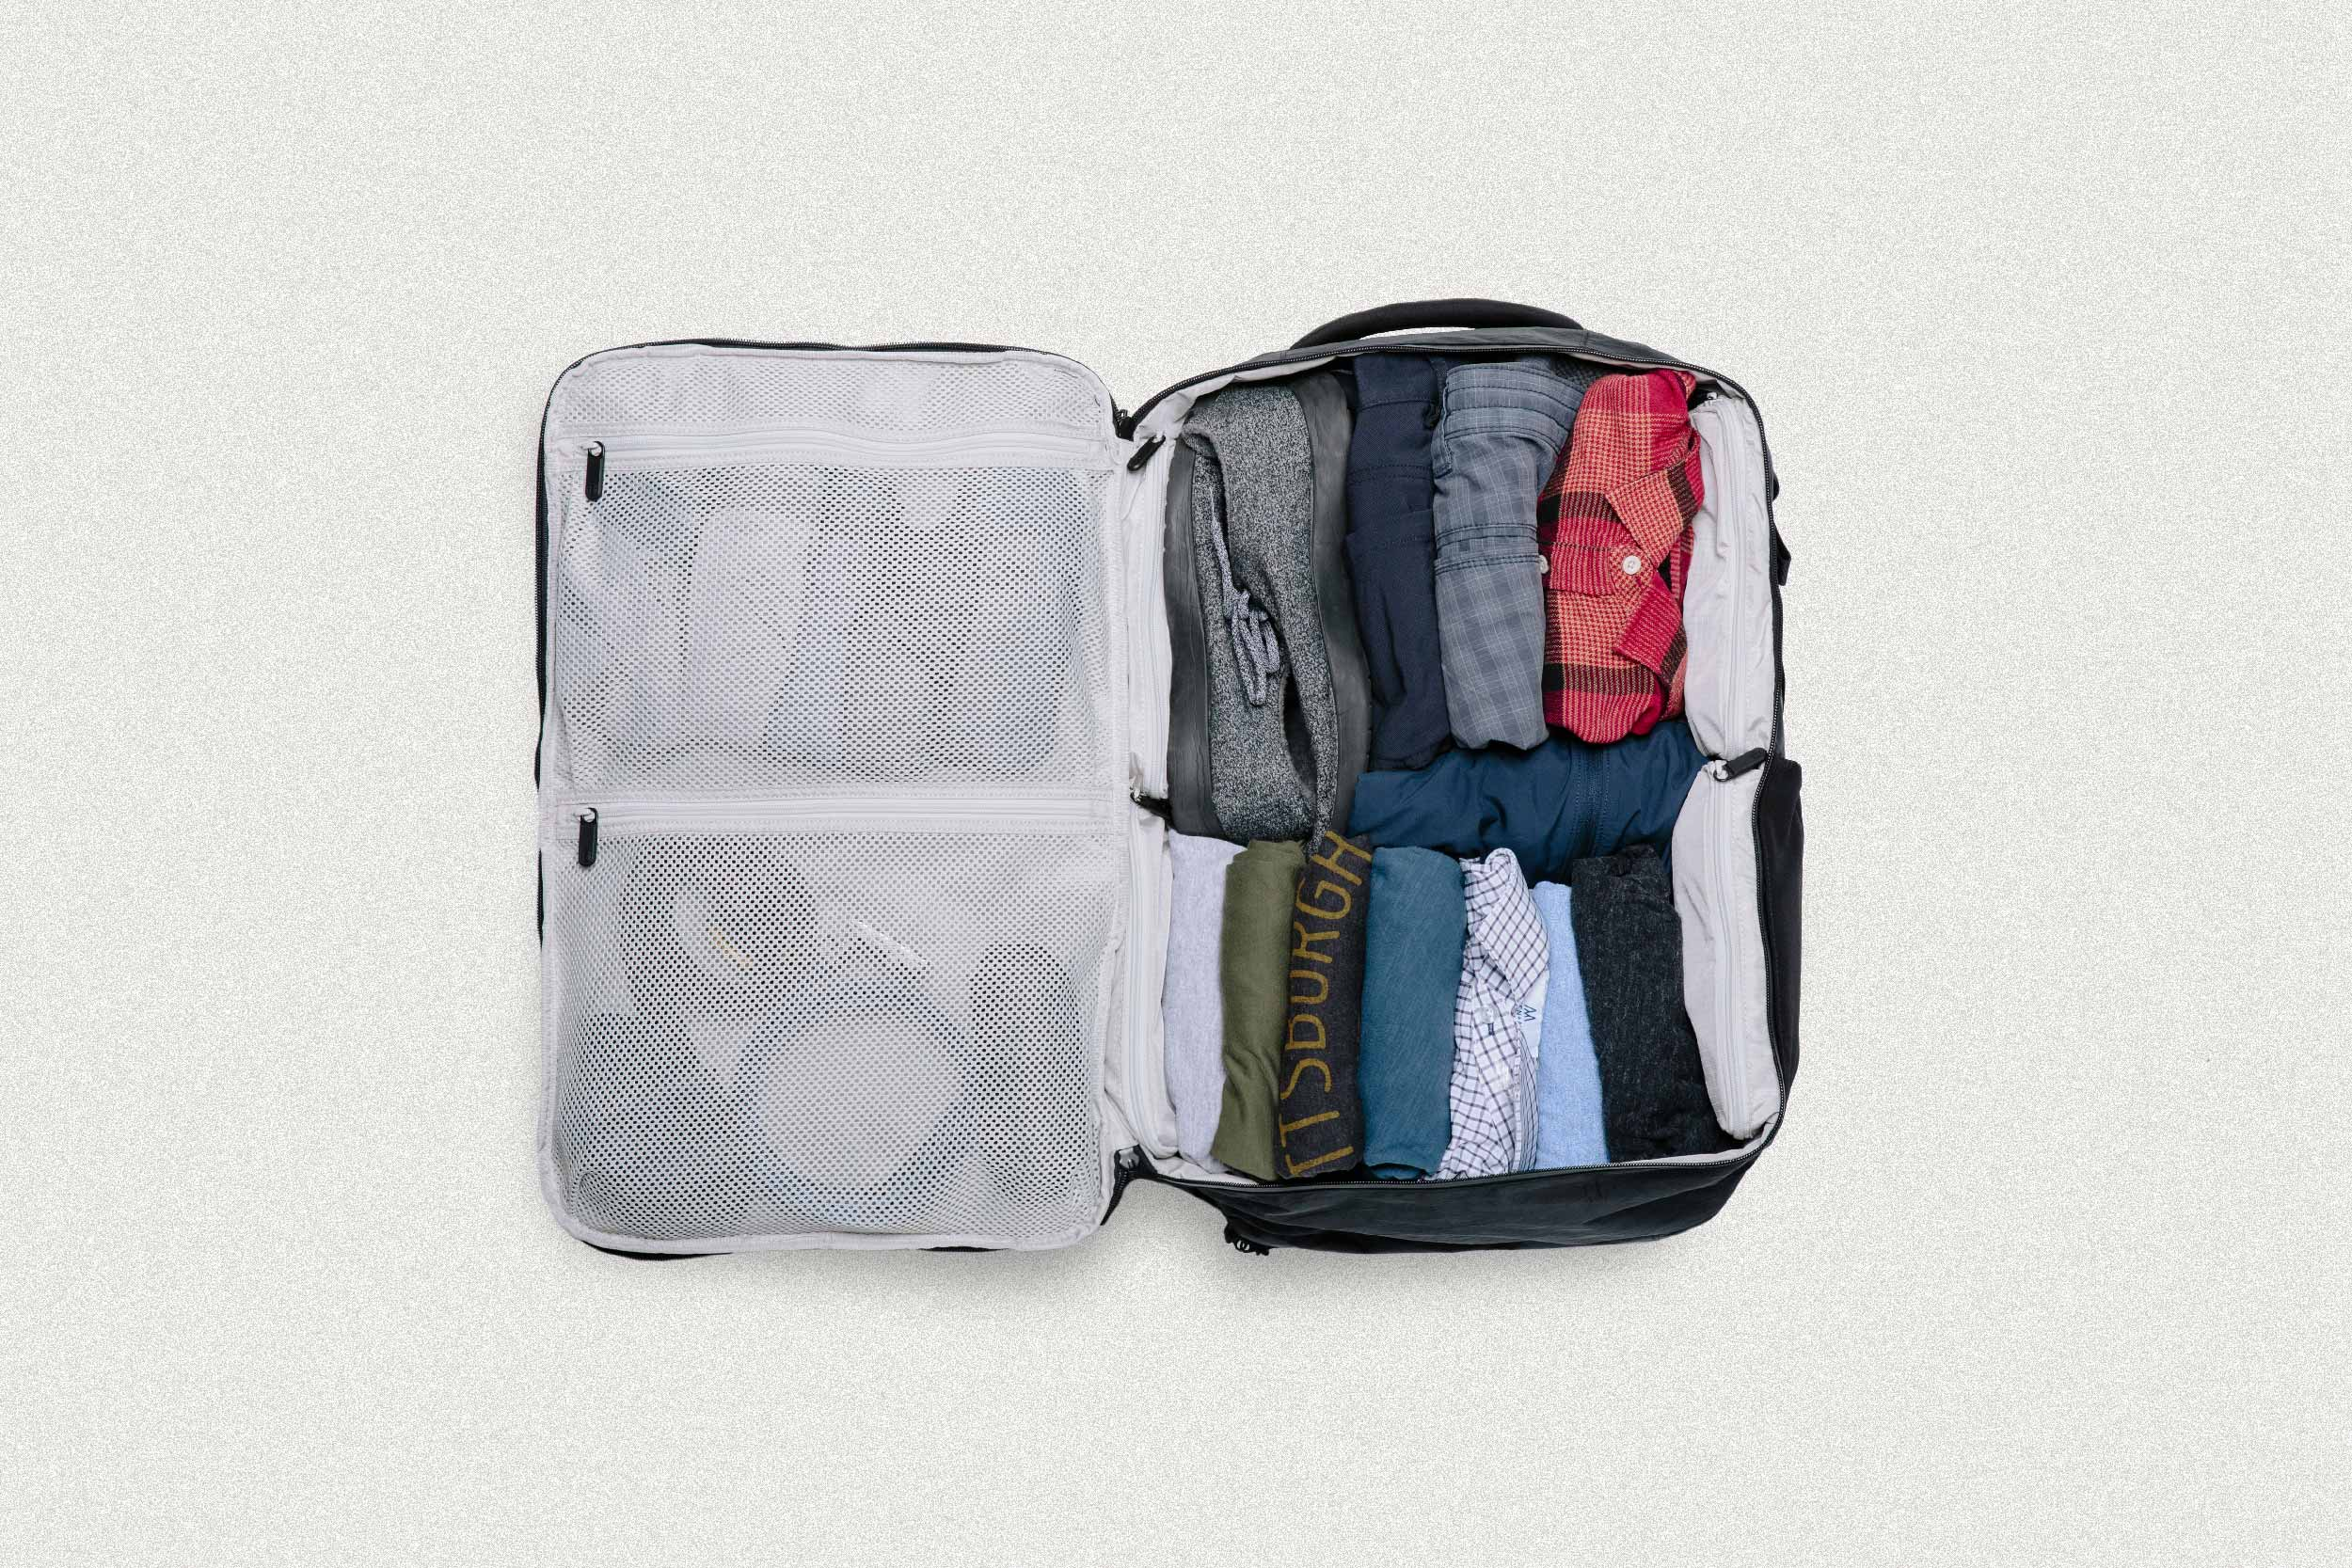 How to keep clothes from wrinkling in luggage tortuga backpacks blog how to pack clothes to avoid wrinkles ombrellifo Gallery